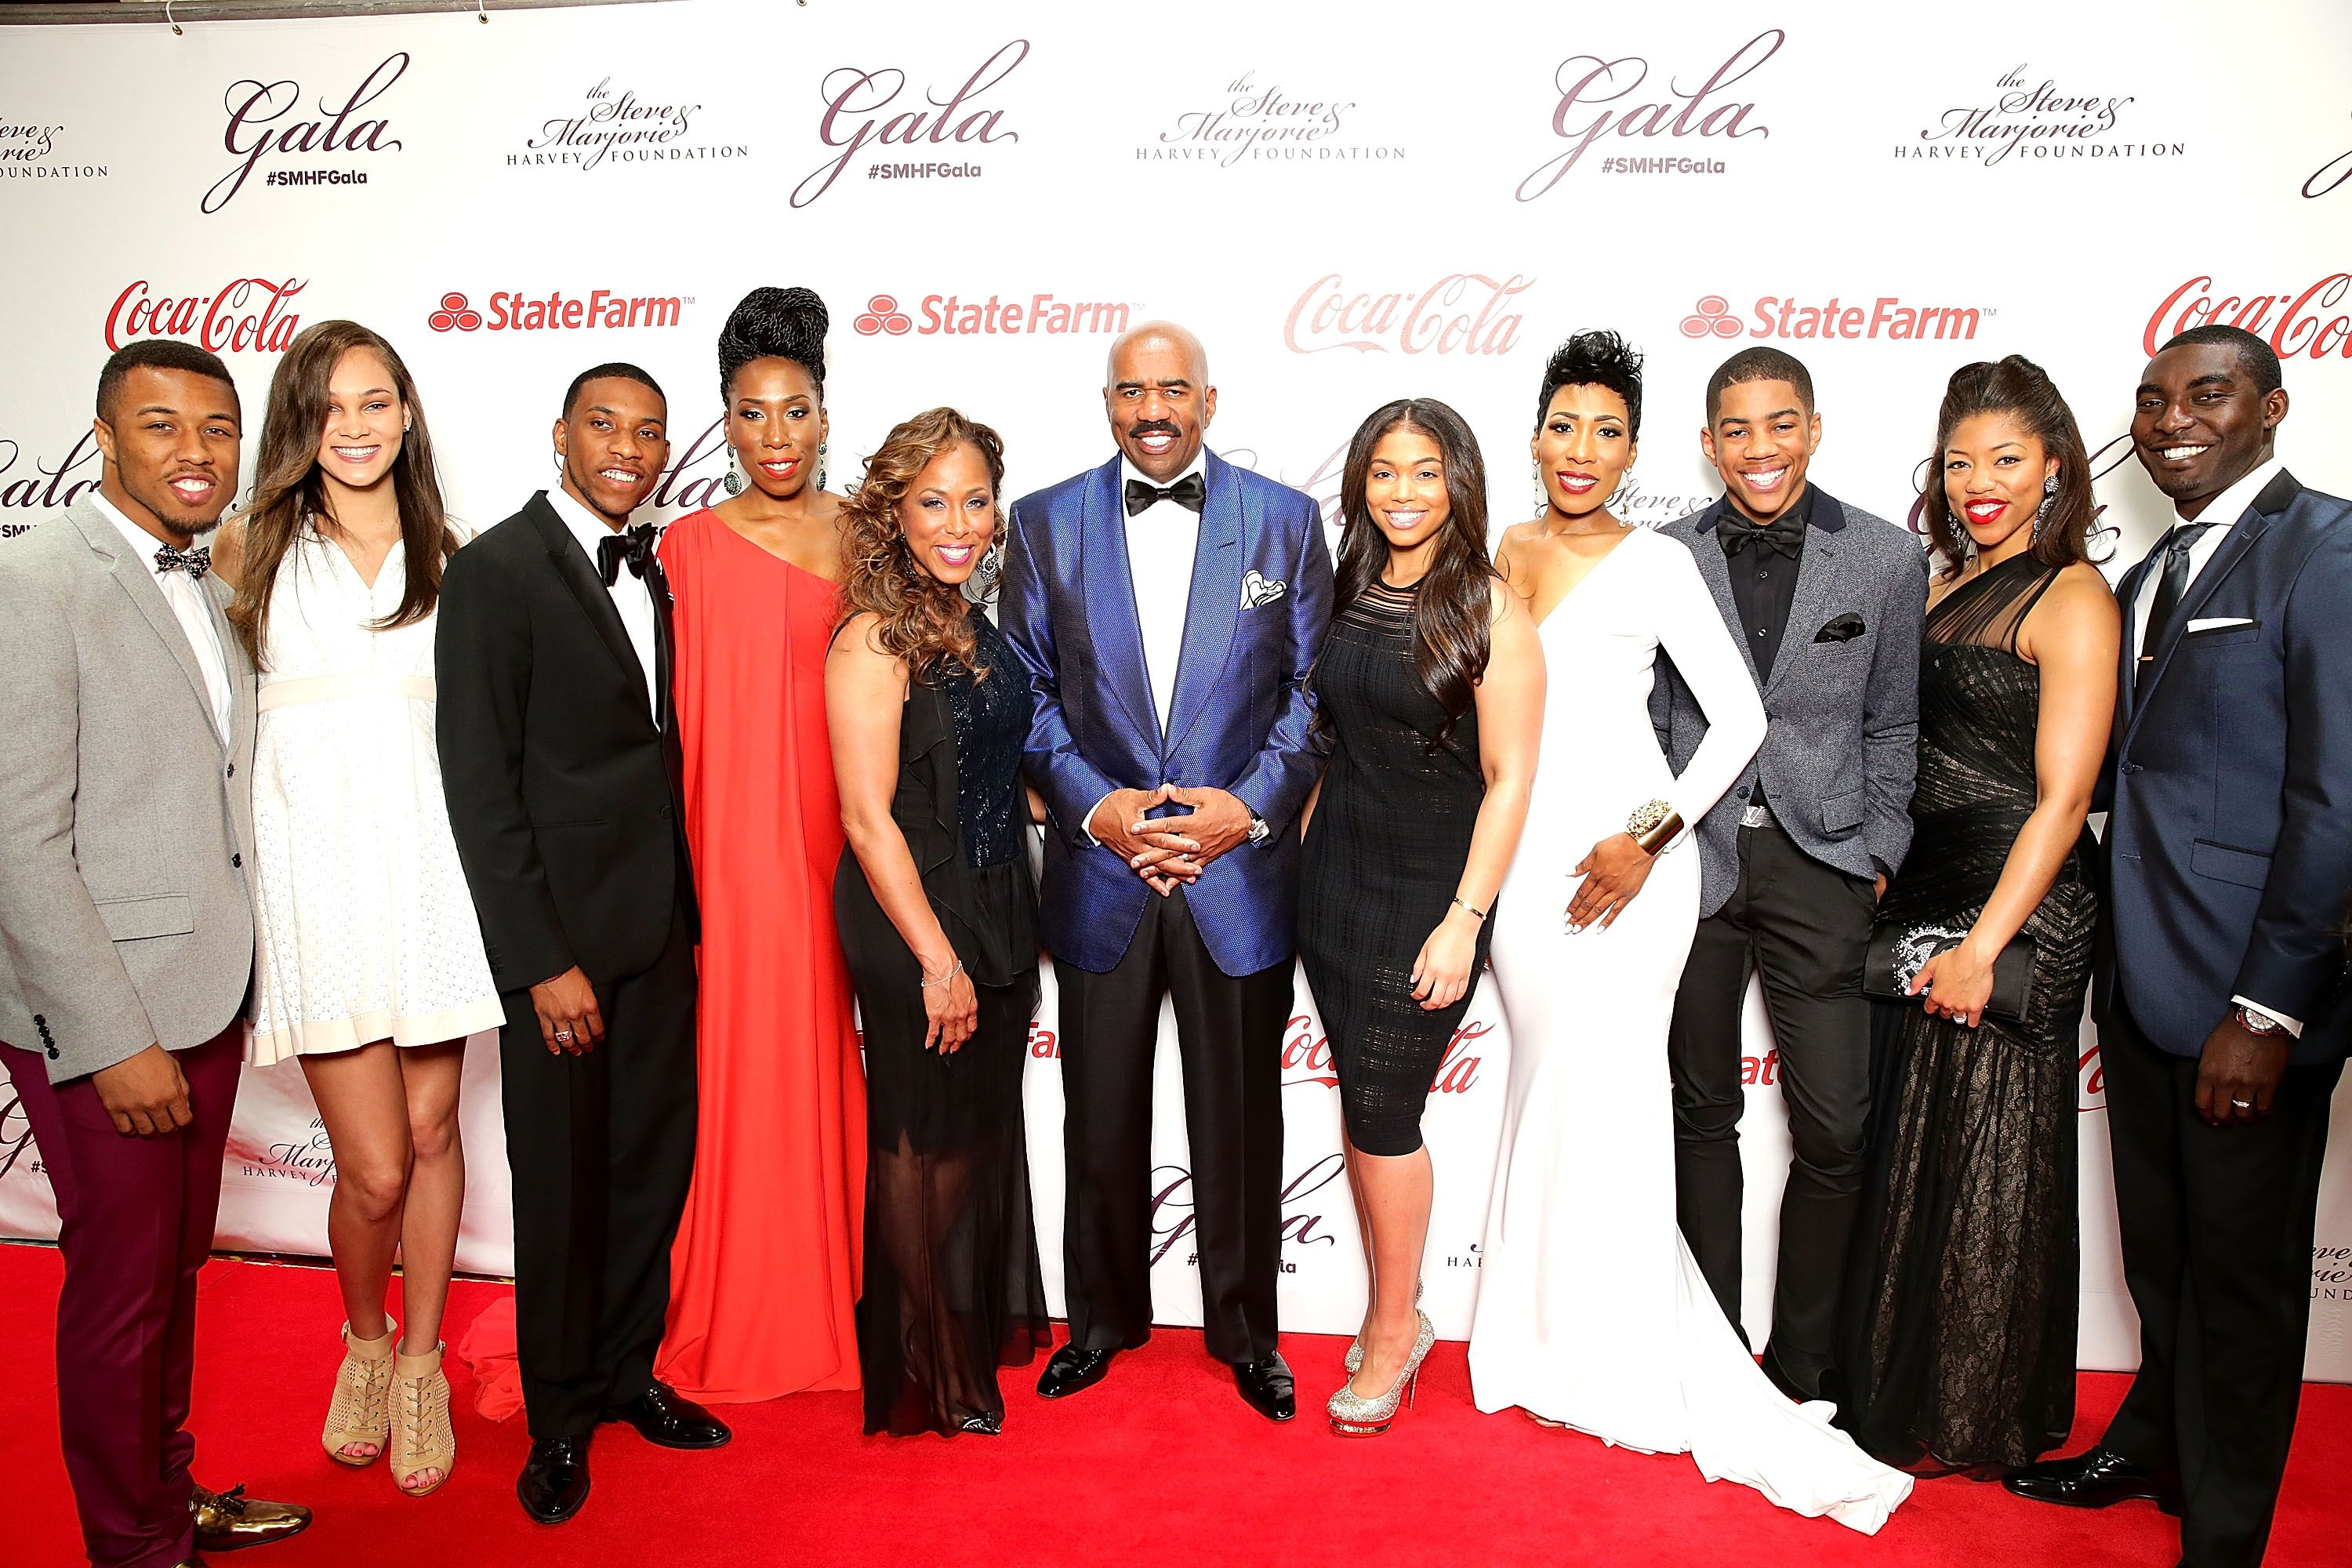 Steve and Marjorie Harvey, with their blended family at the Steve & Marjorie Harvey Foundation Gala in 2014 in Illinois | Photo: Getty Images